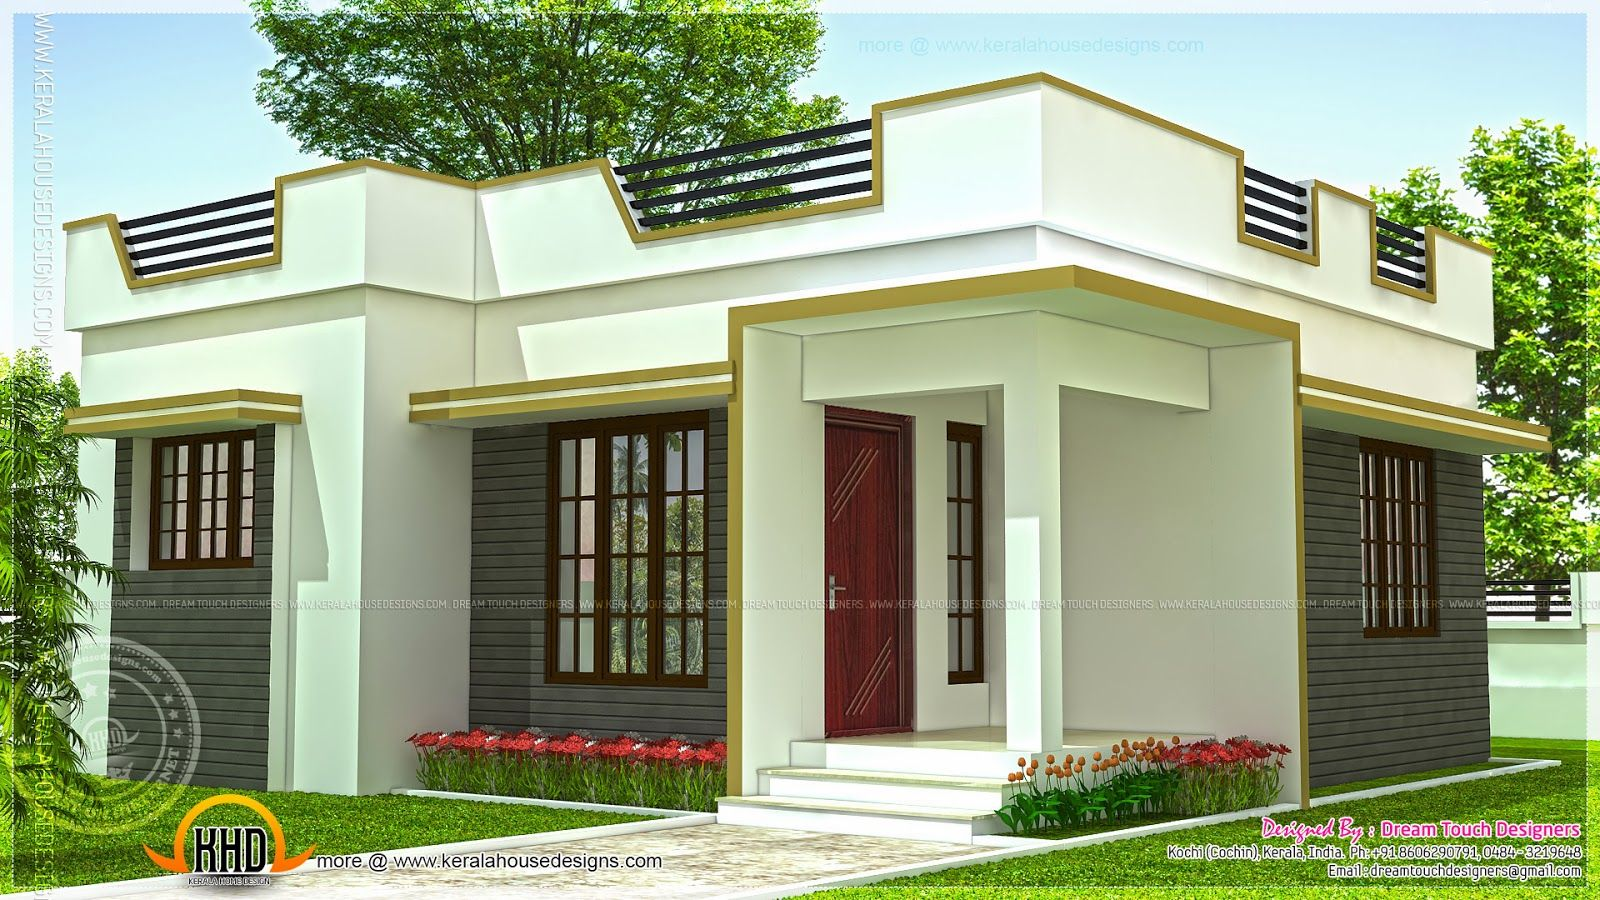 Lately 21 small house design kerala small house for Small house design in jammu